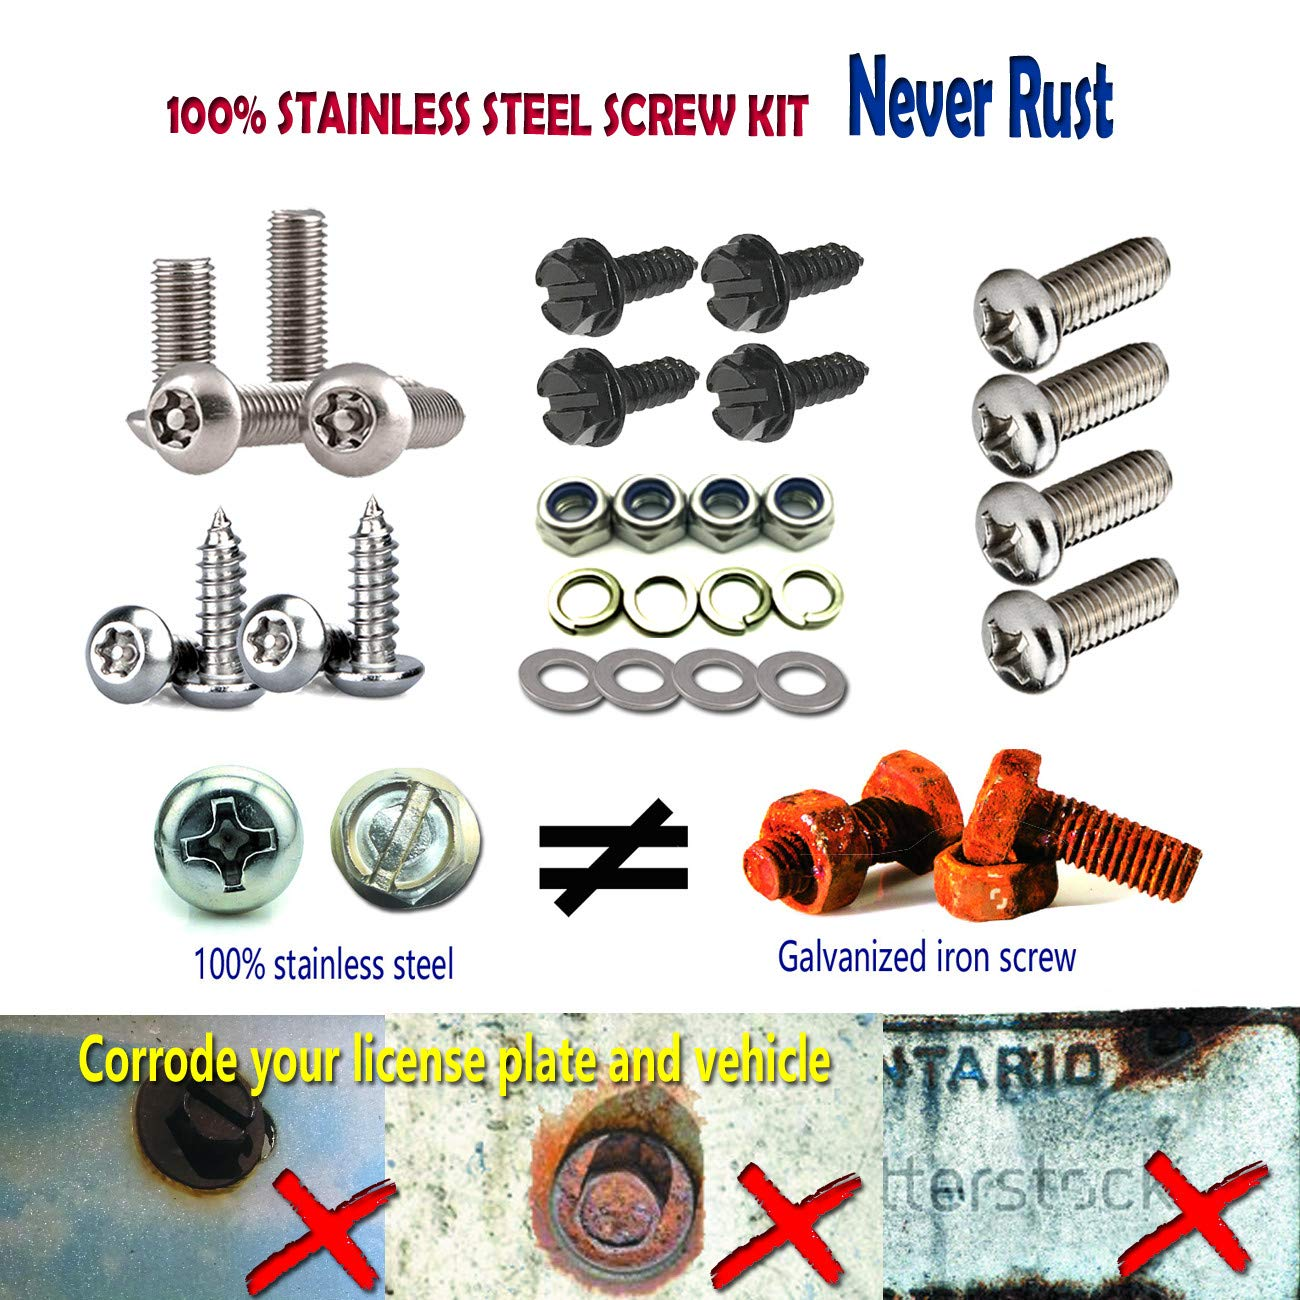 Aootf Black License Plate Frame Screws-Stainless Steel Anti Rust and Caps for Securing License Plates Frames Covers on Domestic Cars and Trucks